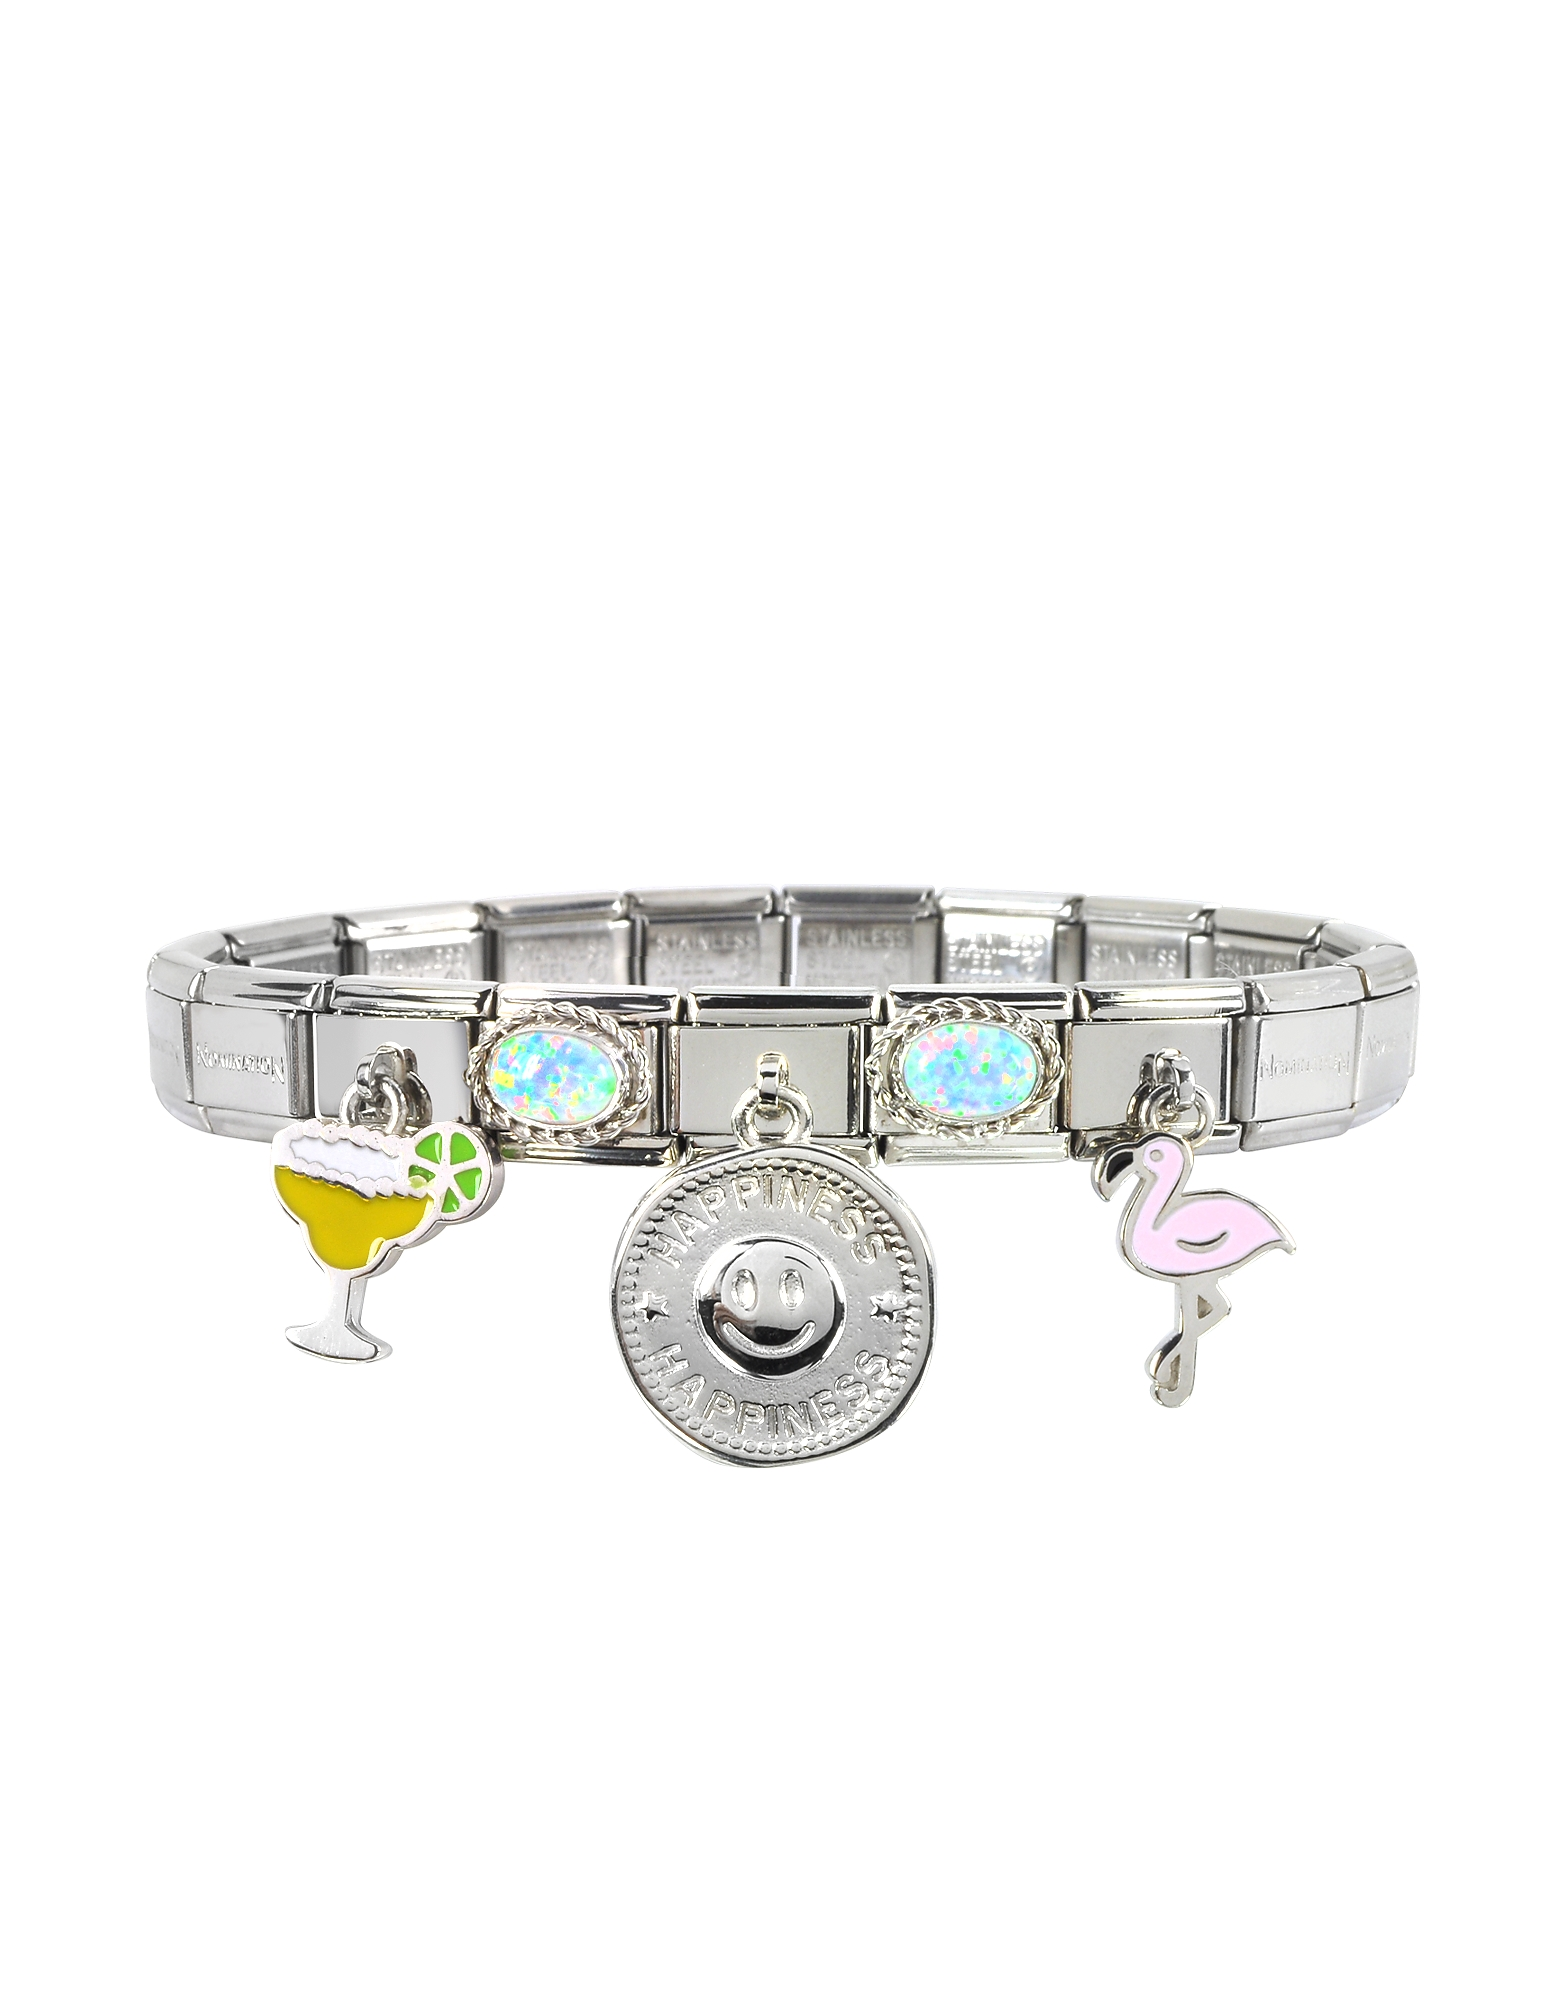 Nomination  Bracelets Happiness Sterling Silver & Stainless Steel Bracelet